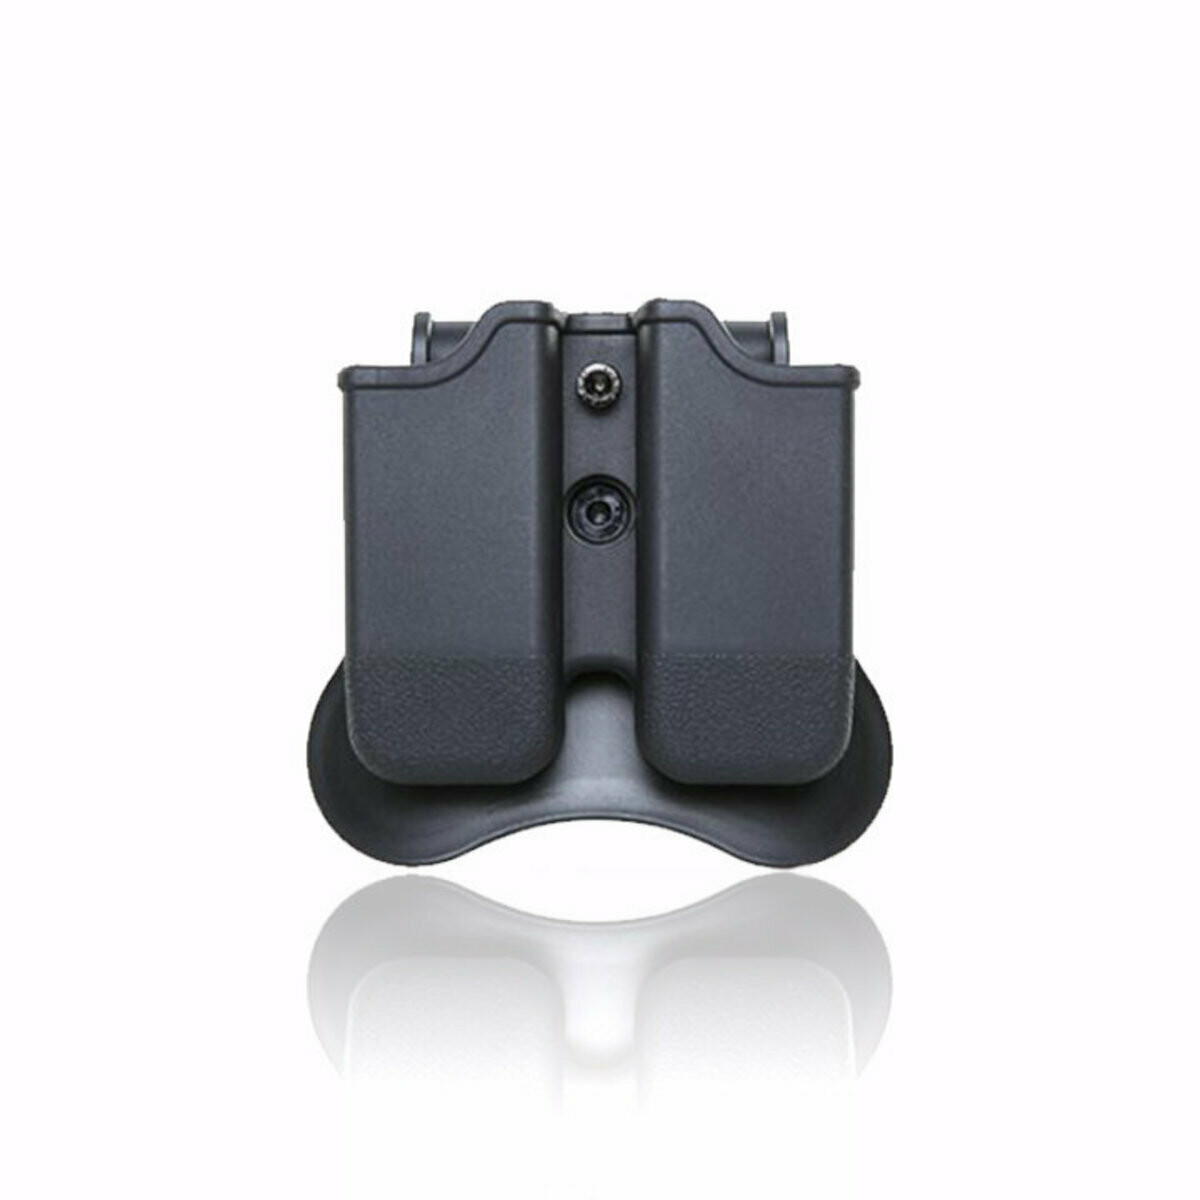 Cytac Double Magazine Pouch For PX4, H&K, Sig, Taurus, Ruger etc..